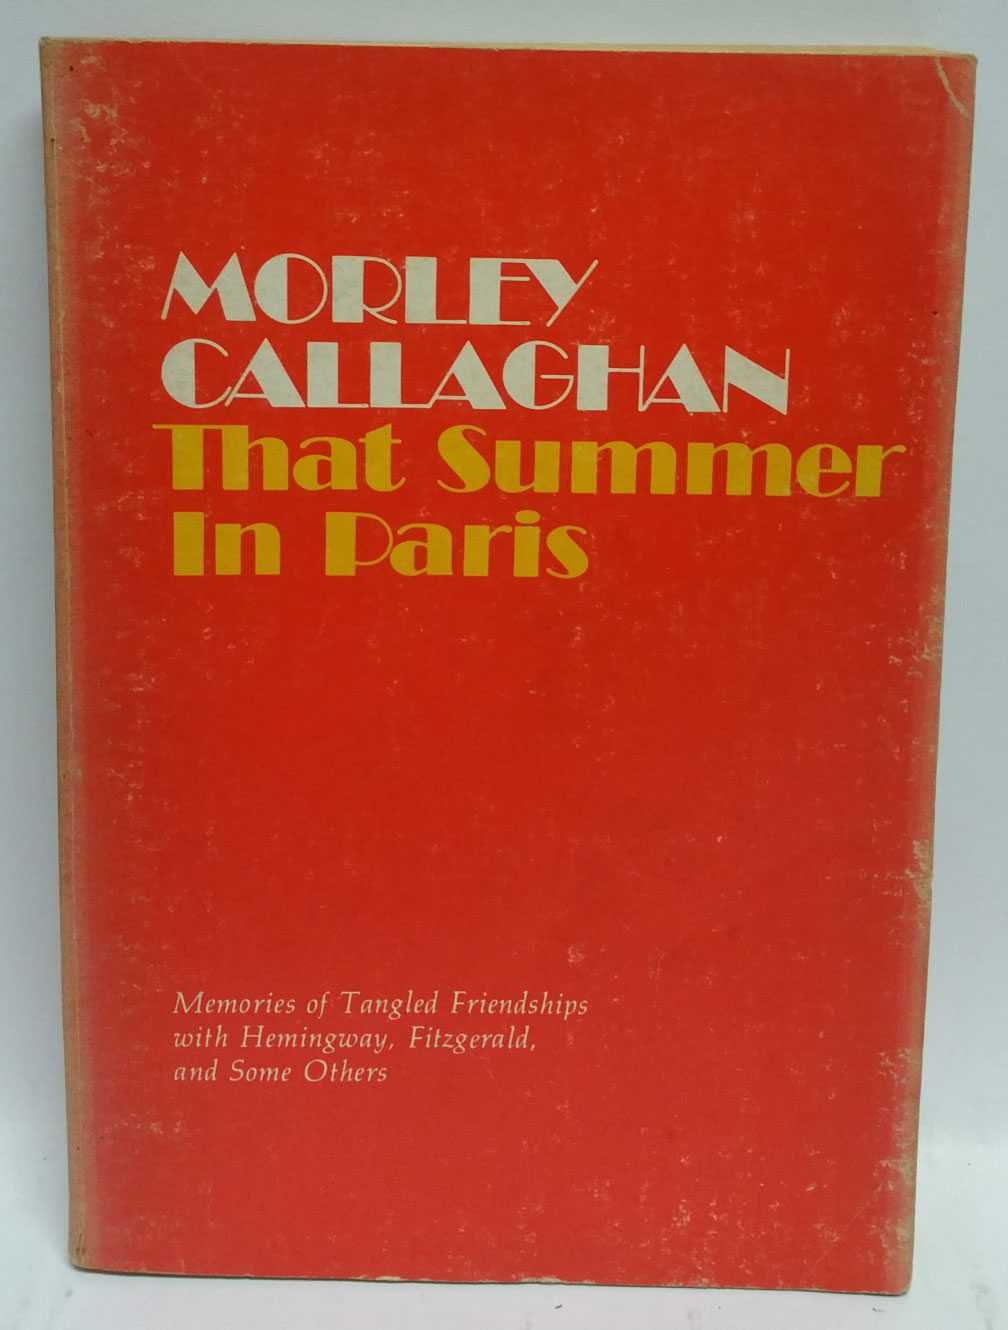 That Summer In Paris: Memories of Tangled Friendships with Hemingway, Fitzgerald, and Some Others, Morley Callaghan